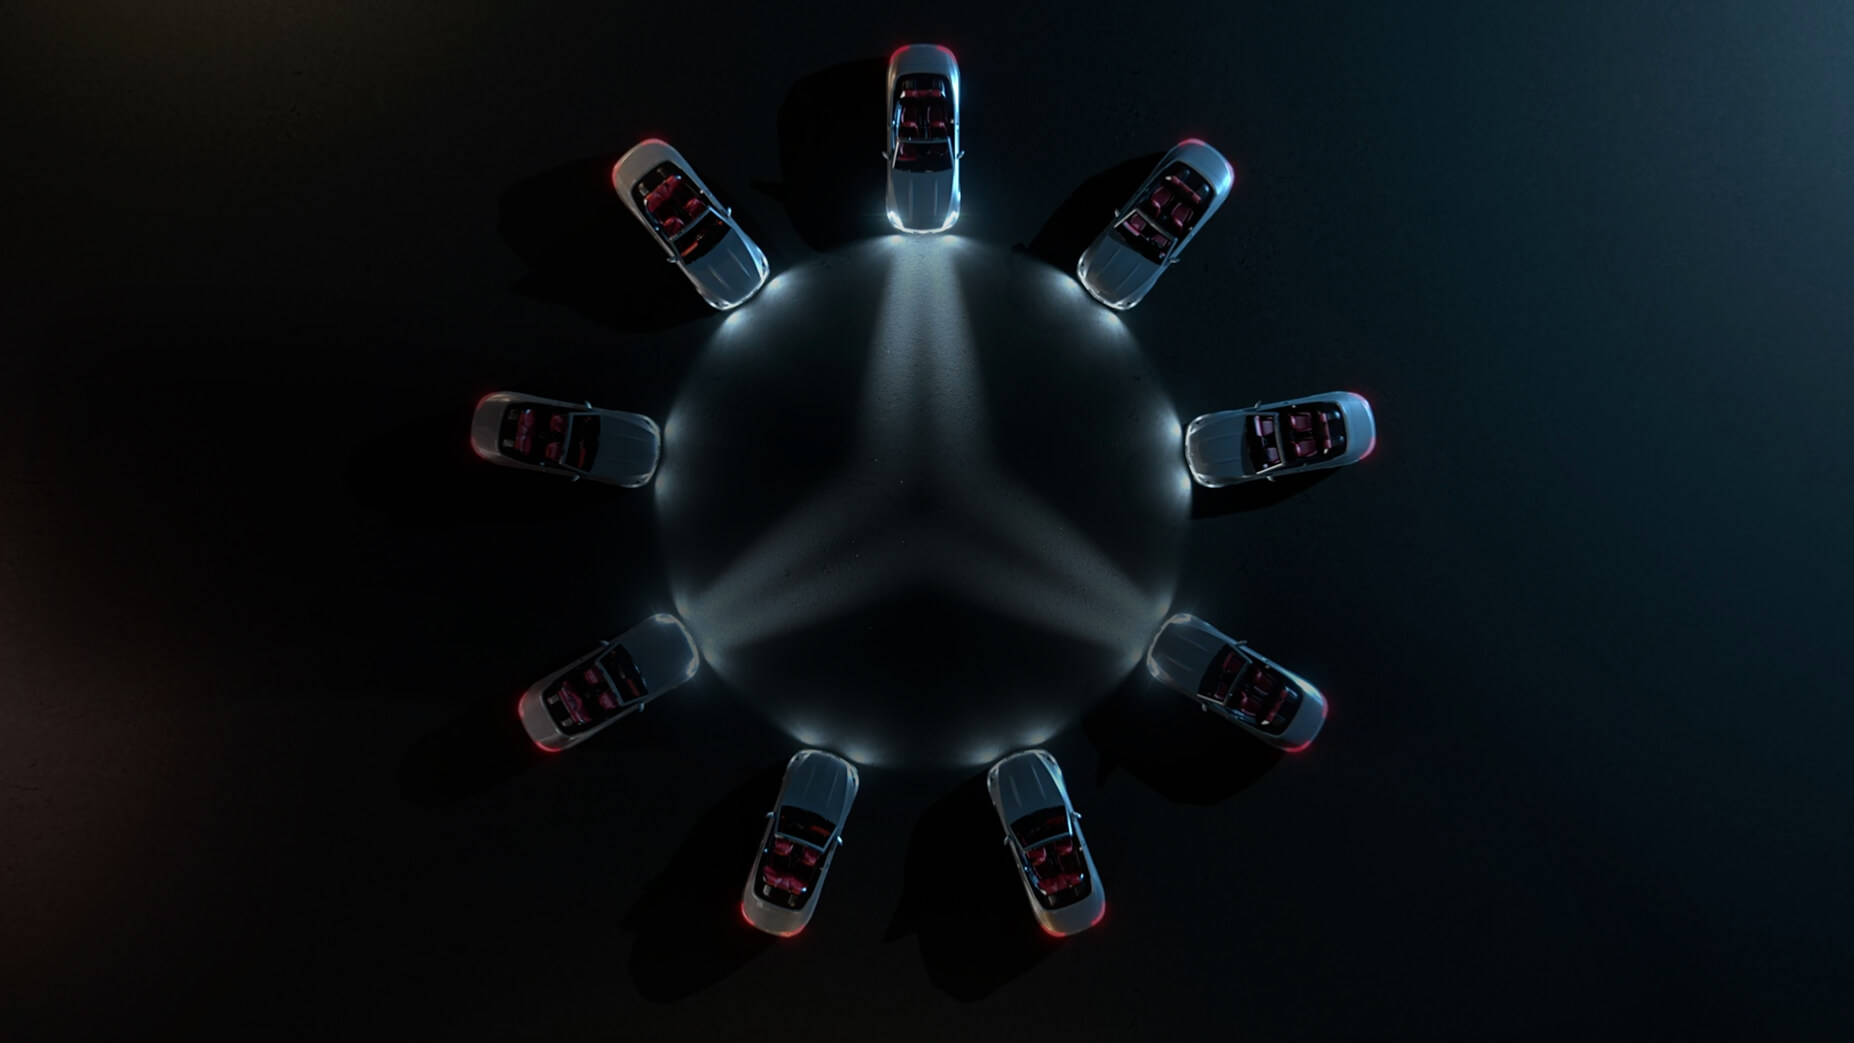 CGI Car visualisation of Mercedes Cars situated in a circle shining the Mercedes logo with their lights